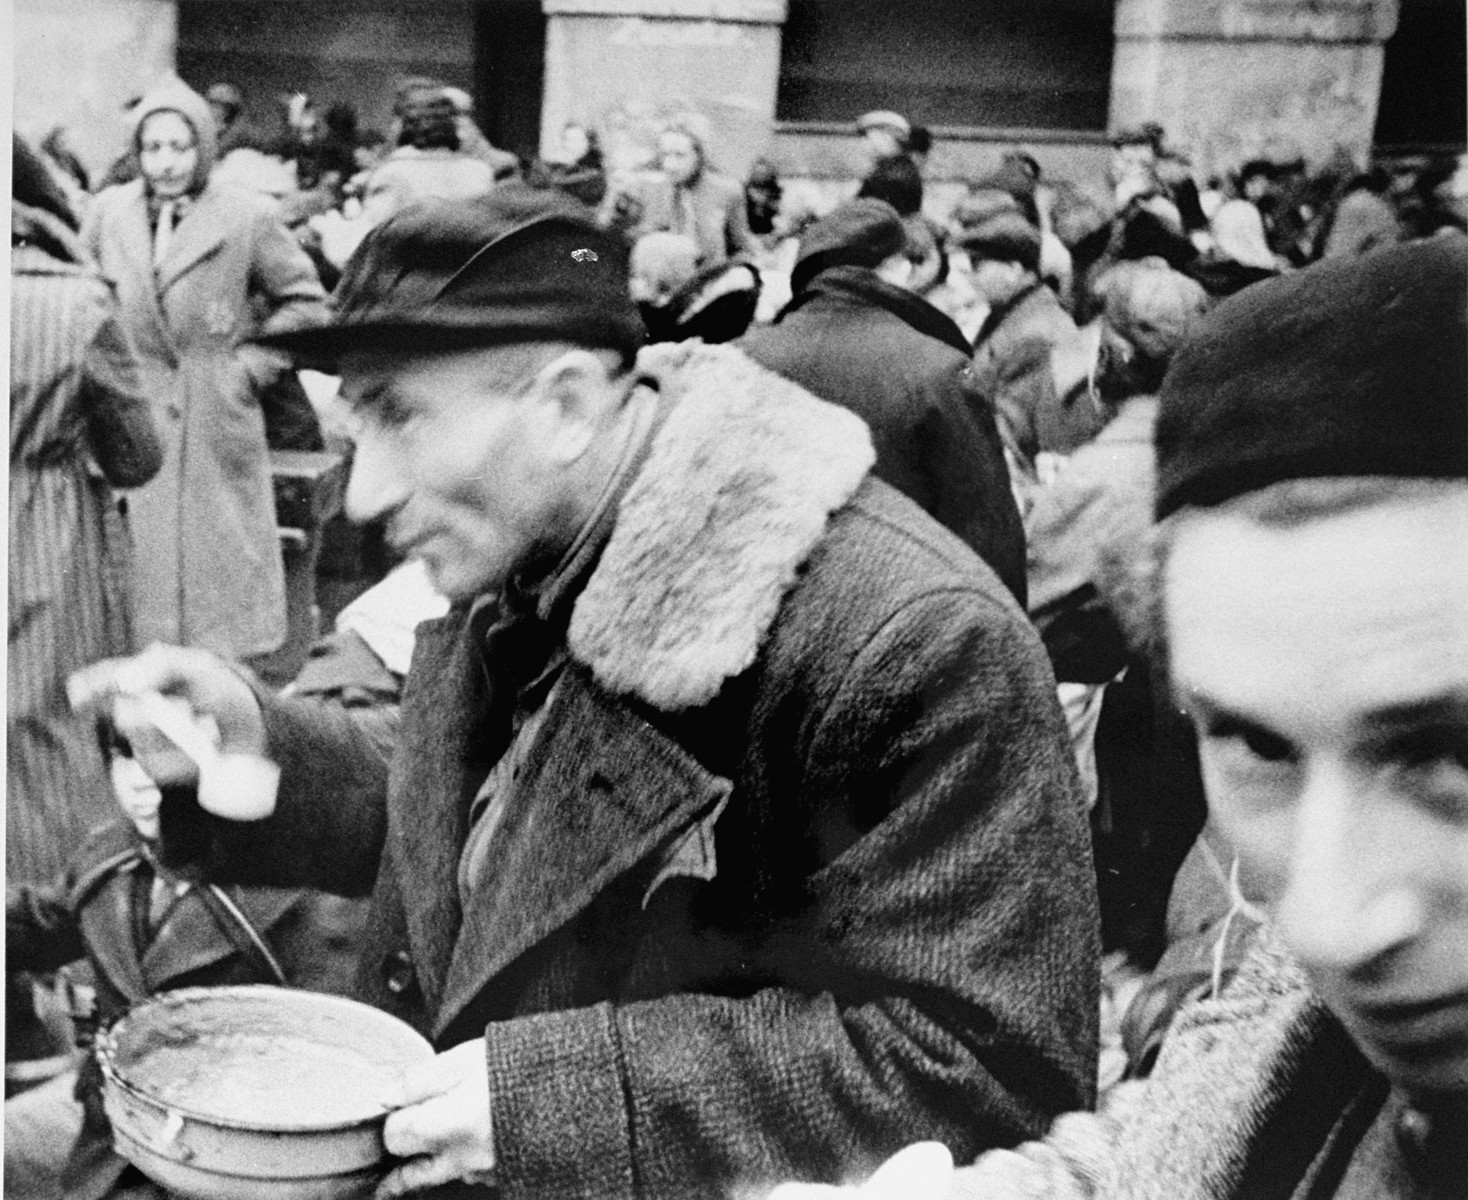 A man who has just arrived in Theresienstadt with a transport of Dutch Jews eats from a bowl in the main courtyard of the ghetto. [oversized photo]